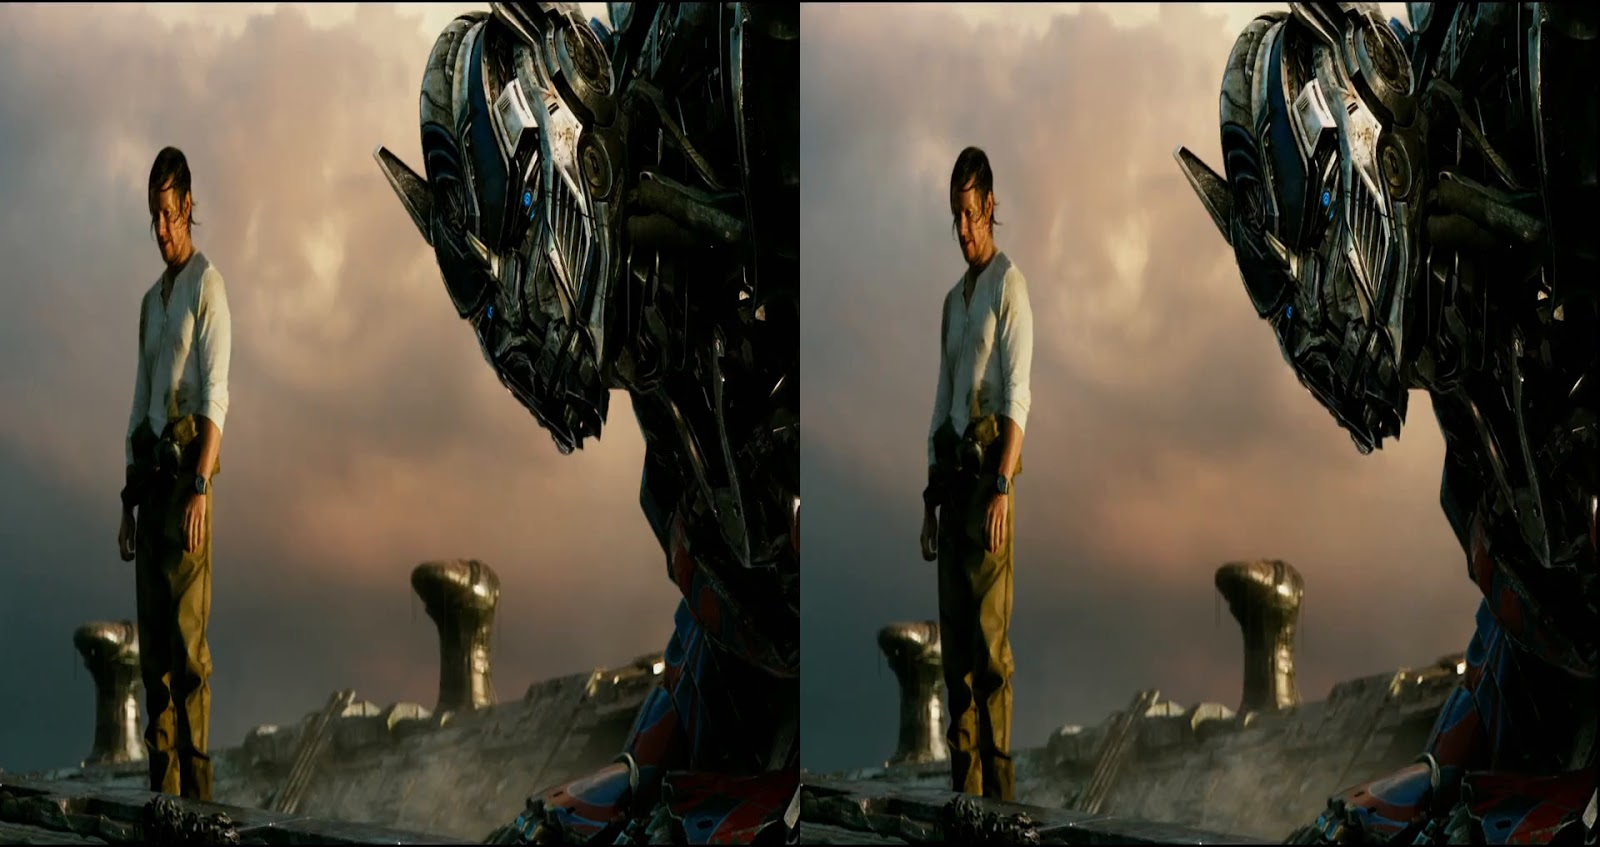 Transformers 5: El último Caballero (2017) 3D SBS 1080p Latino - Ingles captura 3